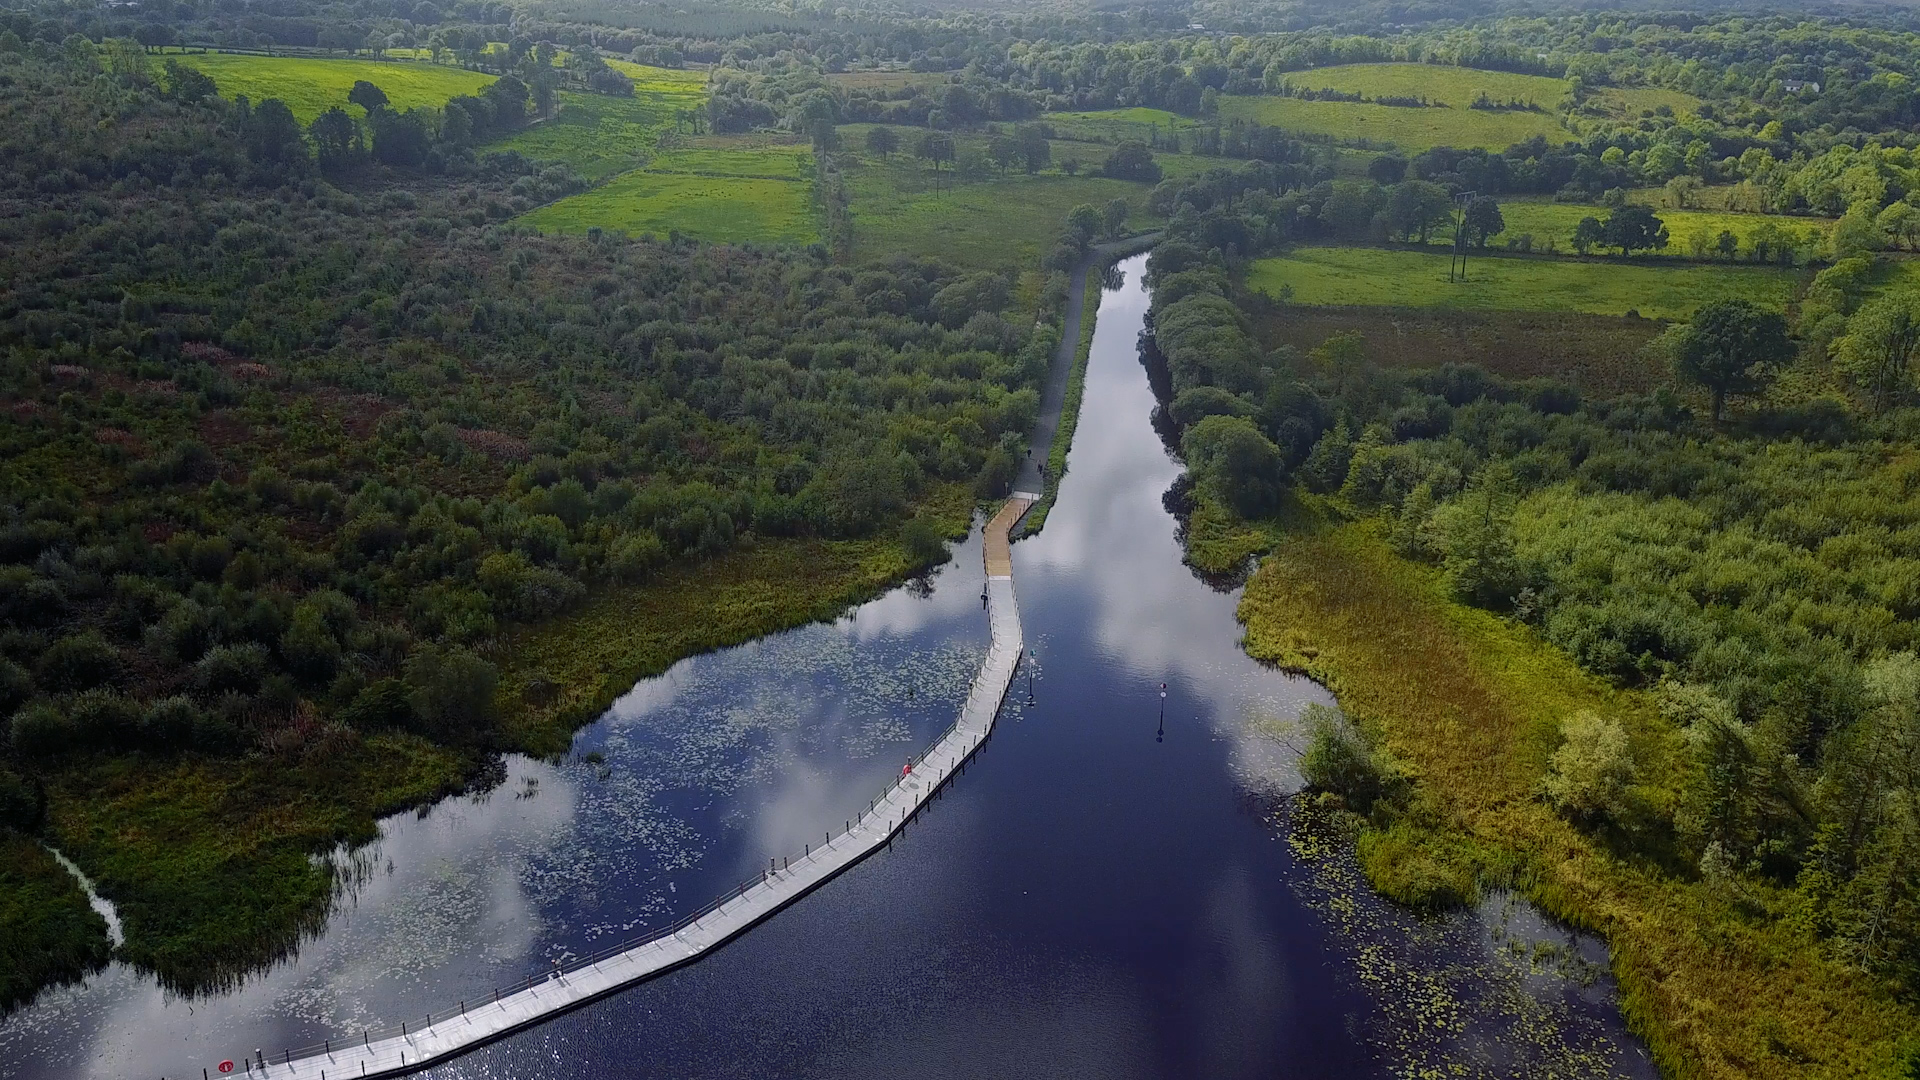 The floating boardwalk in Leitrim   was a sight to behold when we walked there, making up our own little version of the Leitrim Way. This video isn't exclusively flying shots, but the introduction is still pretty good!